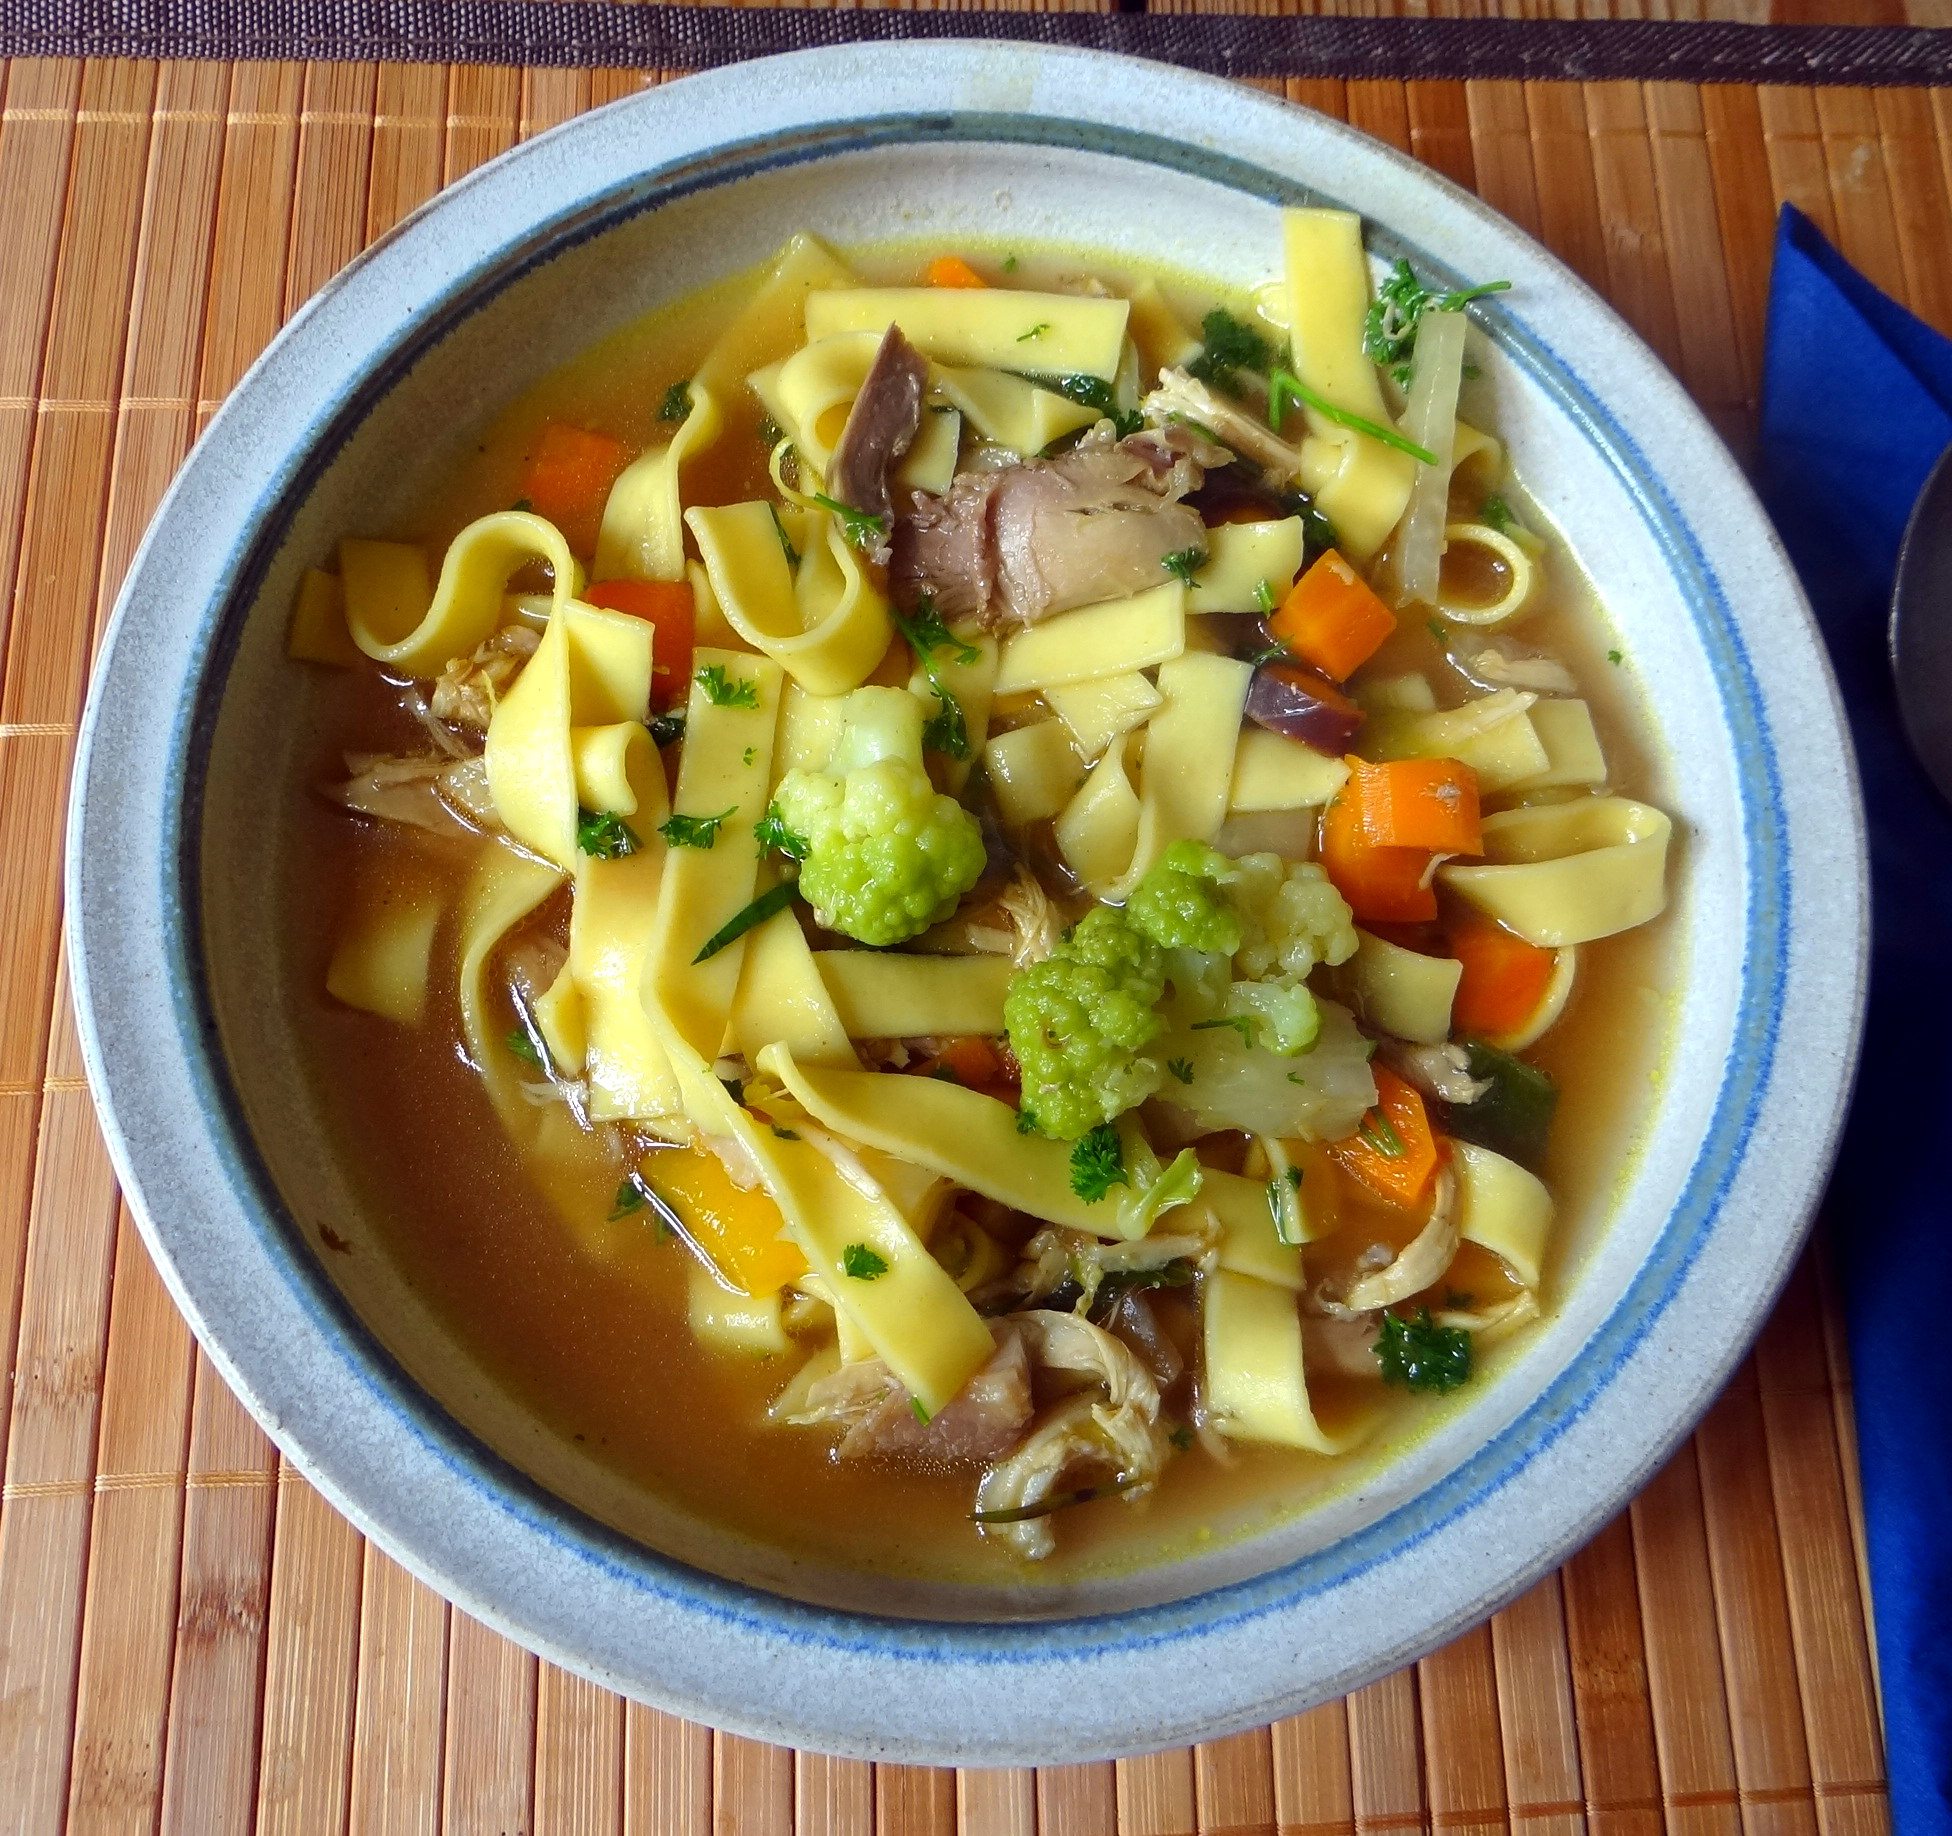 Nudelsuppe-4..7 (2)